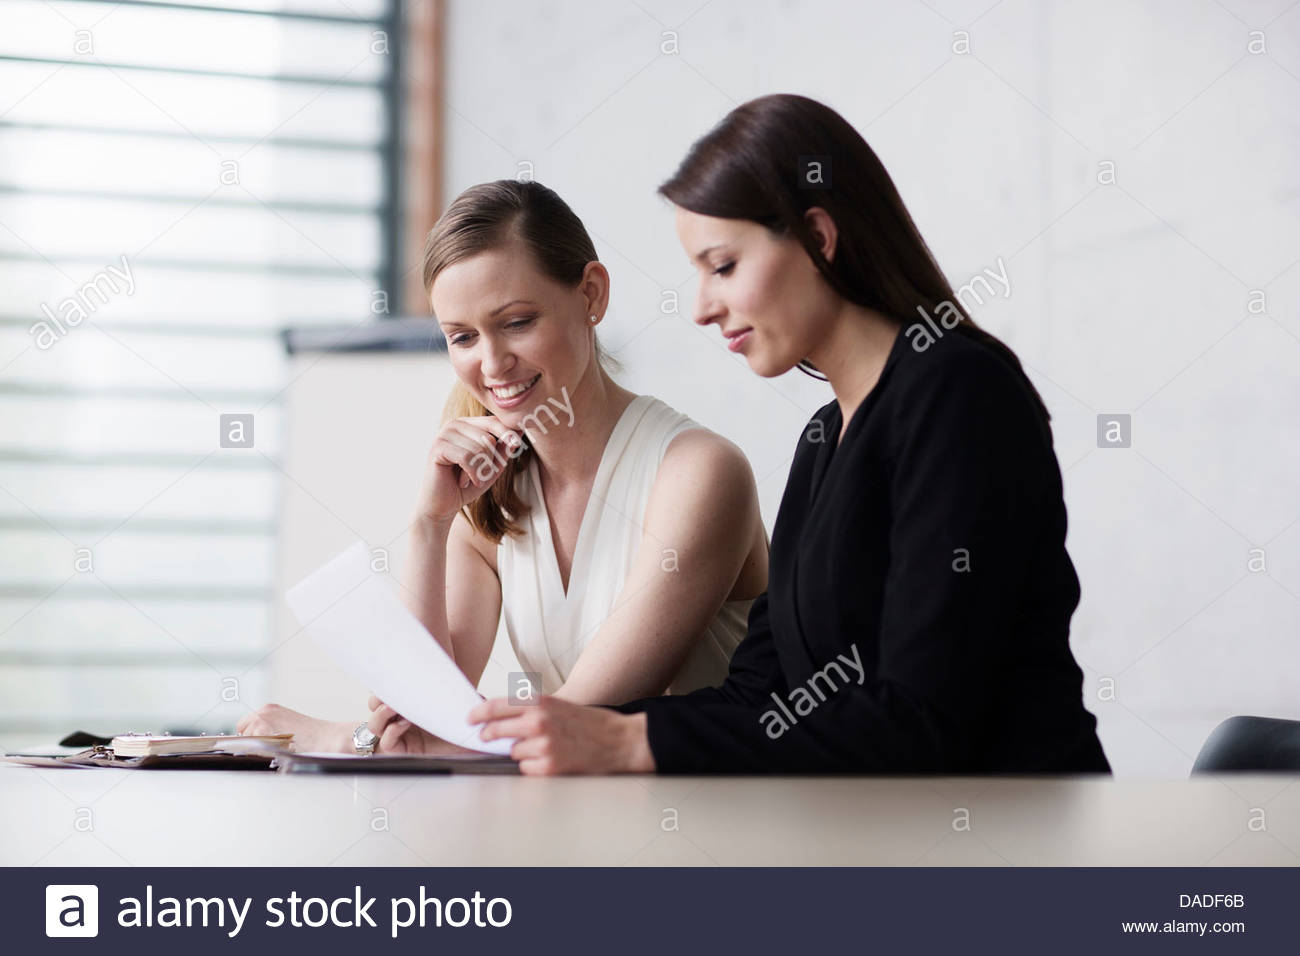 Two women in meeting - Stock Image